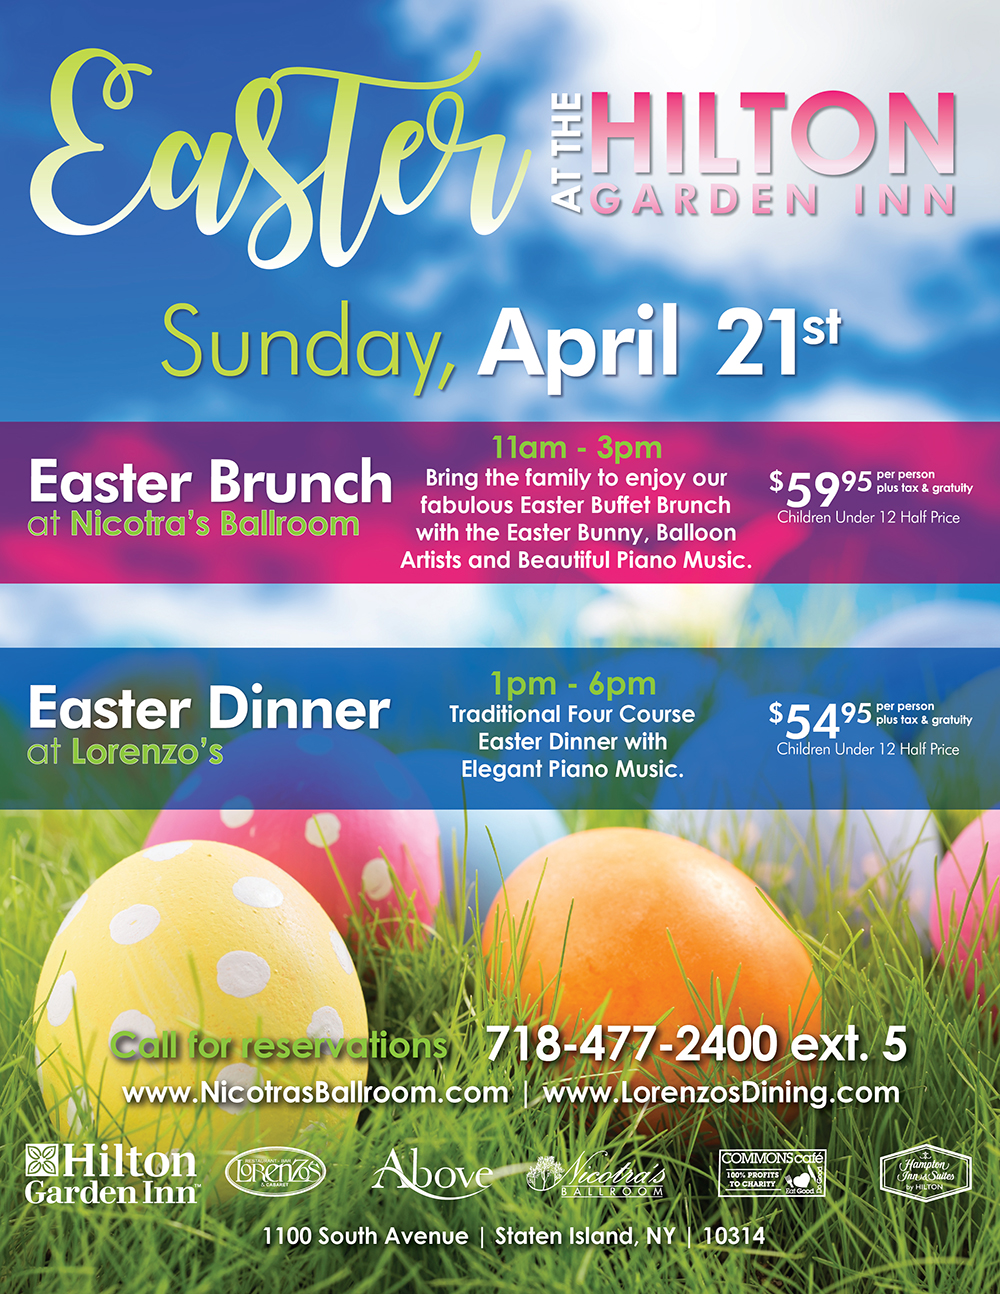 Easter Brunch at Nicotra's Ballroom